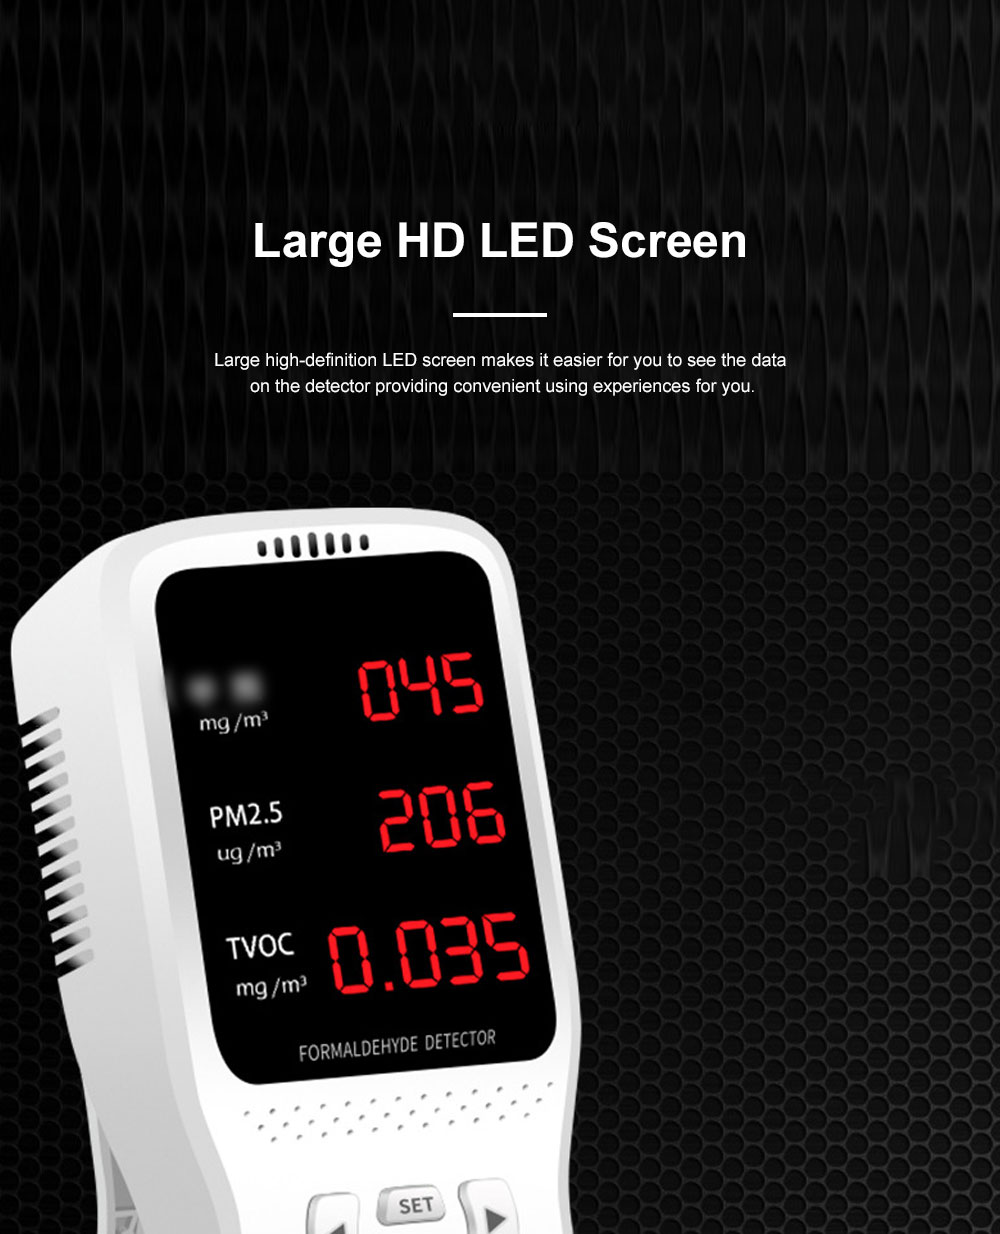 JBL Professional Stable Quick Household PM2.5 TVOC Formaldehyde Air Quality Detector with Intelligent Chip Large HD Screen 6